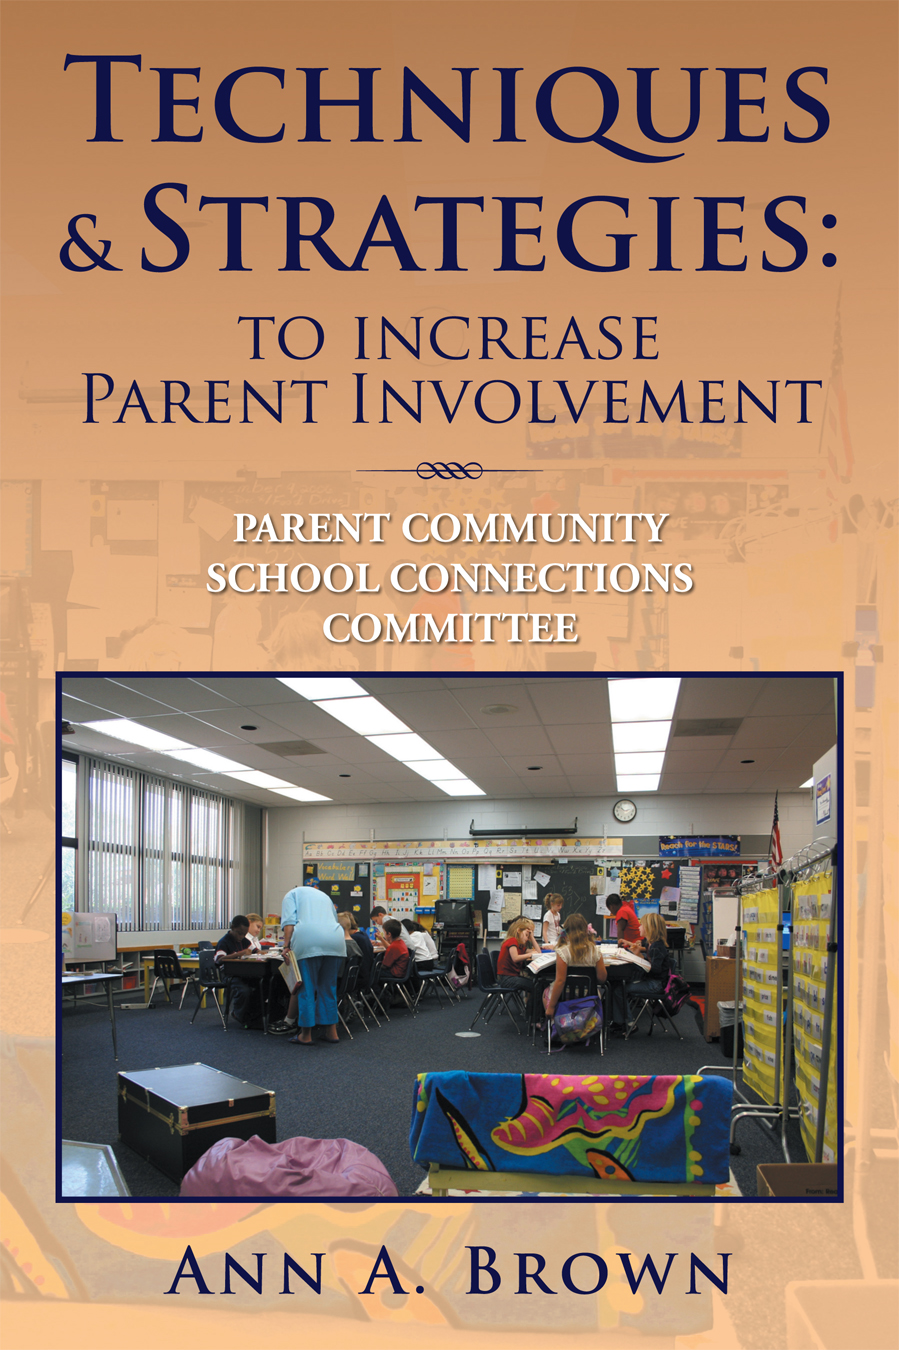 Techniques & Strategies: To Increase Parent Involvement